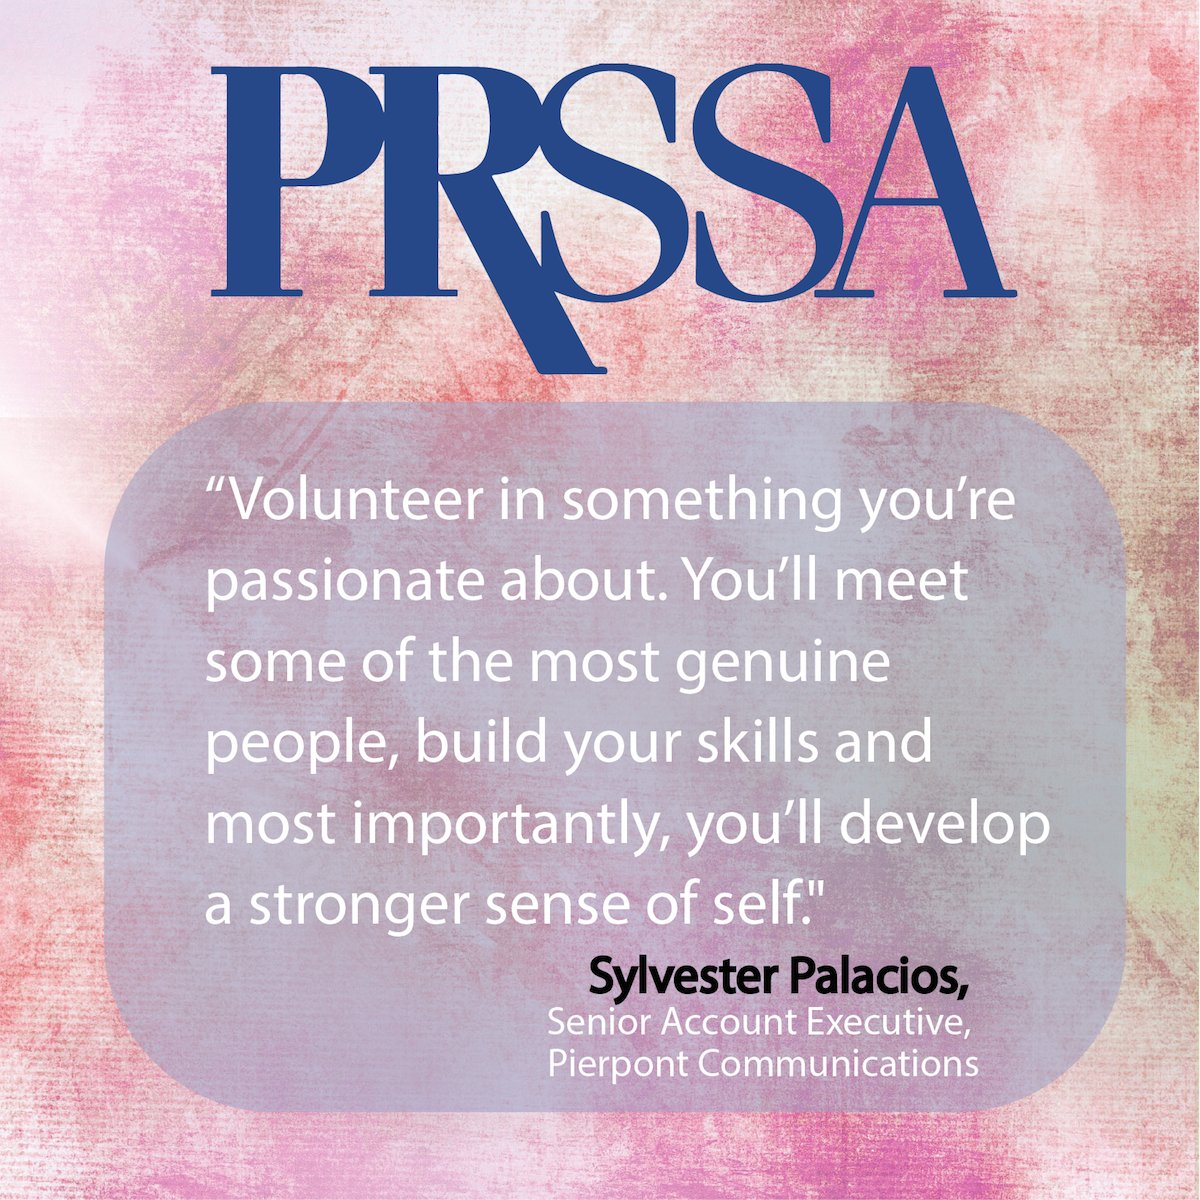 Develop your personal brand by volunteering for something you're passionate about. #PRSSA https://t.co/6DlDQlVUkK